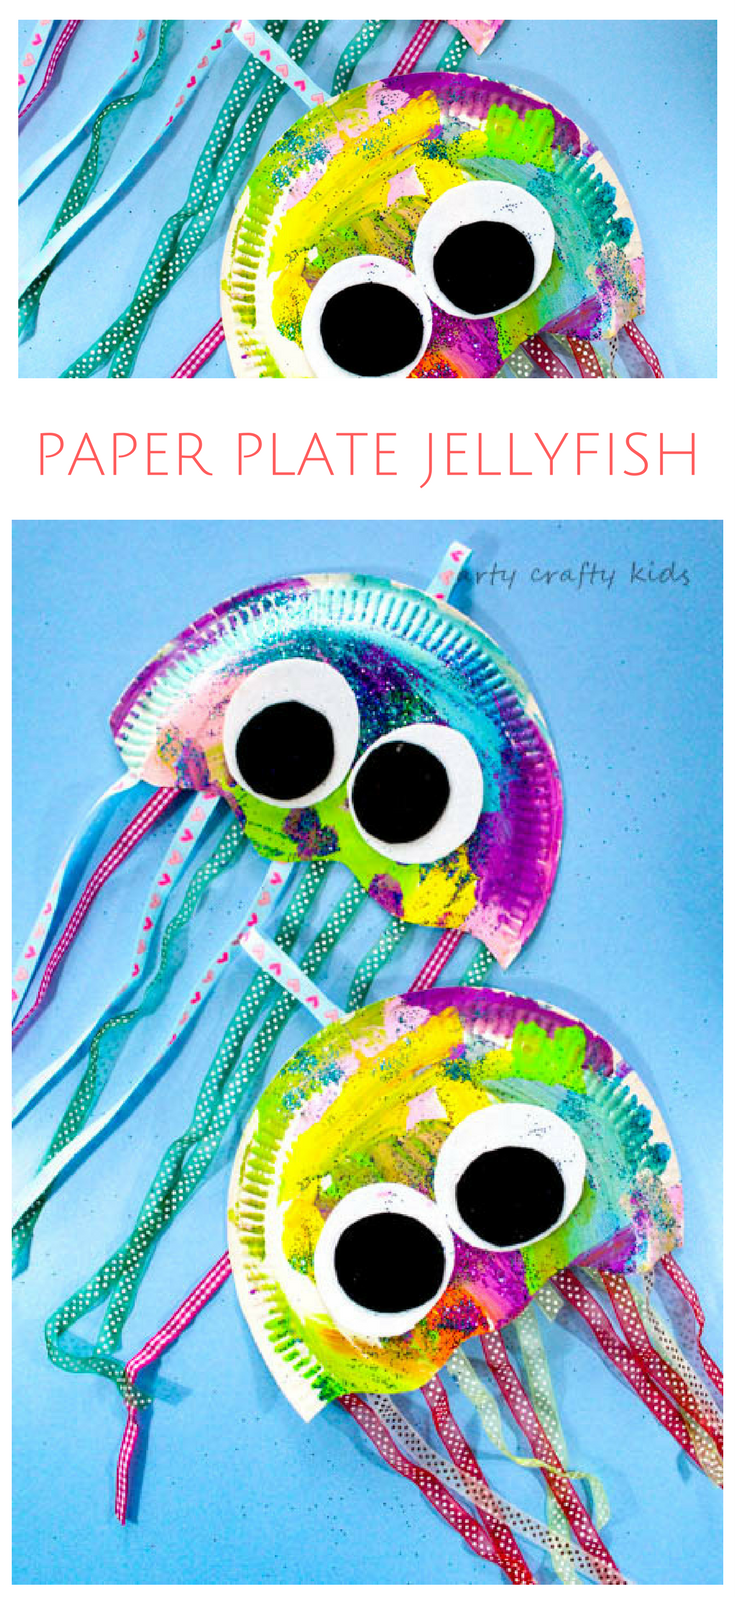 paper plate jellyfish craft paper plate jellyfish crafty kids